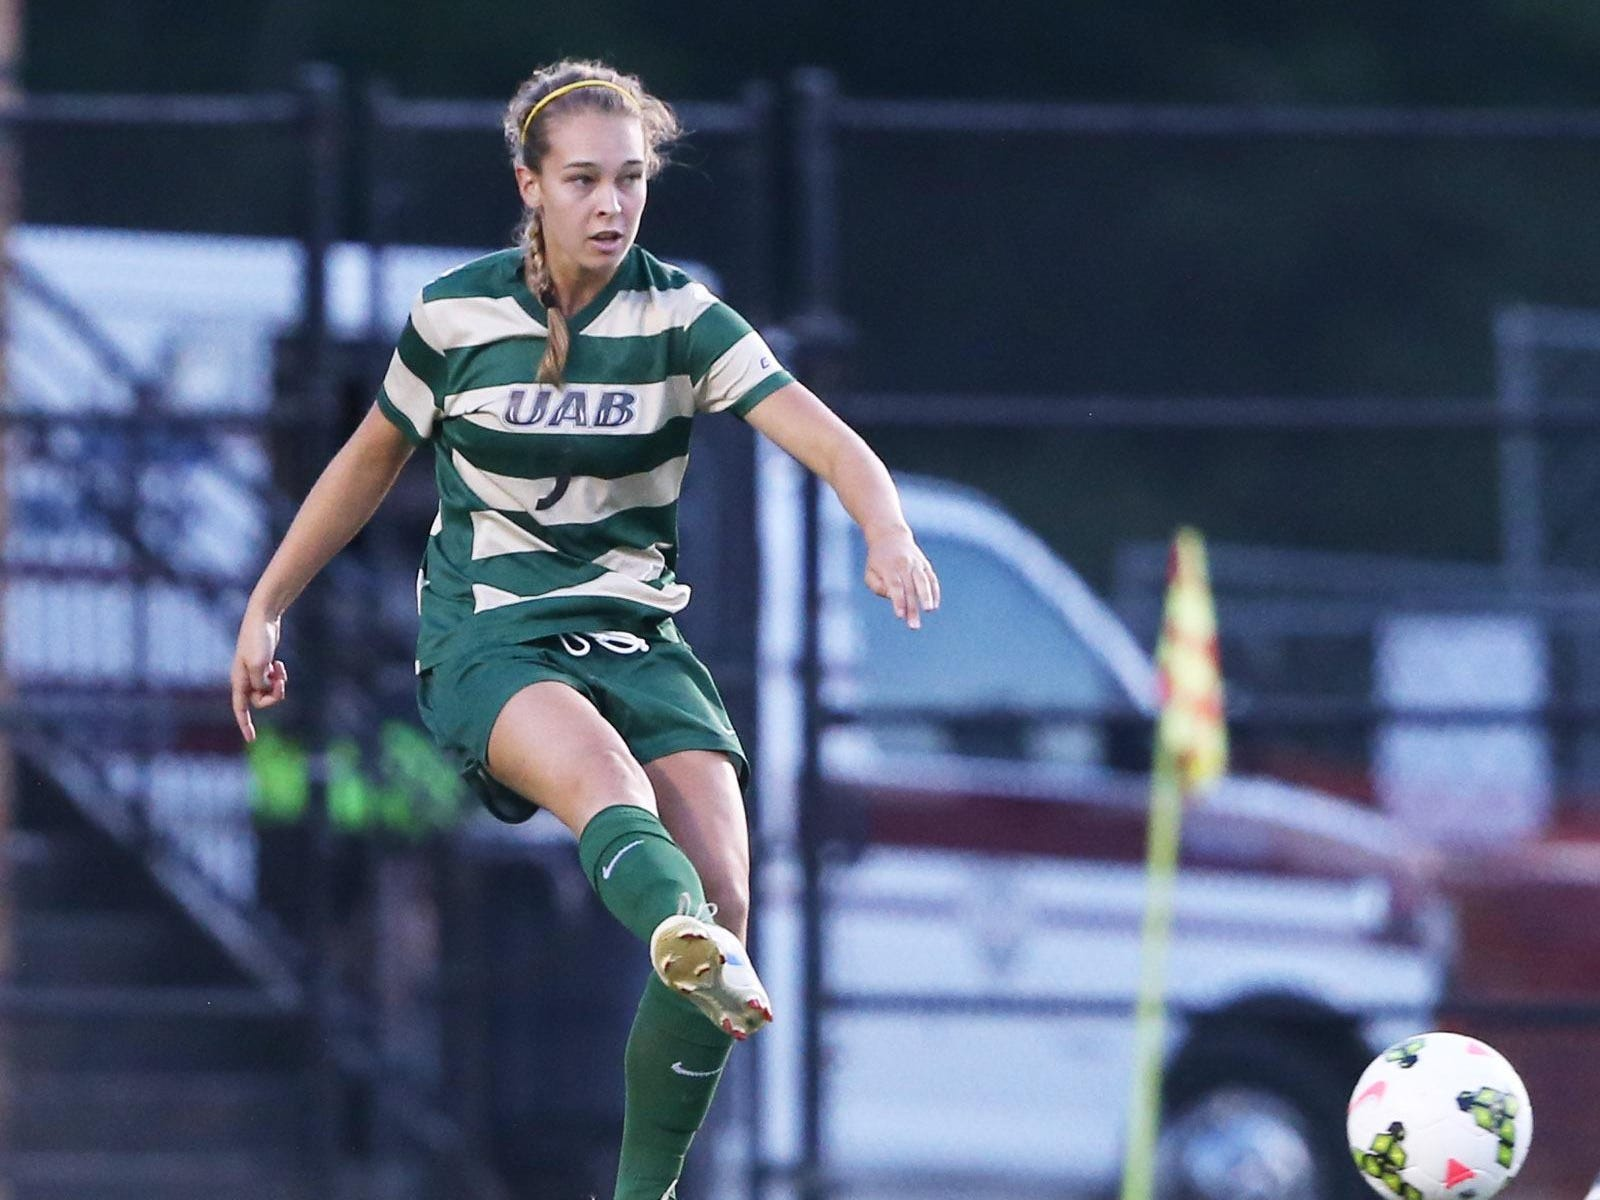 Gabrielle Brokamp from Walnut Hills High School delivers a pass for the UAB women's soccer team.